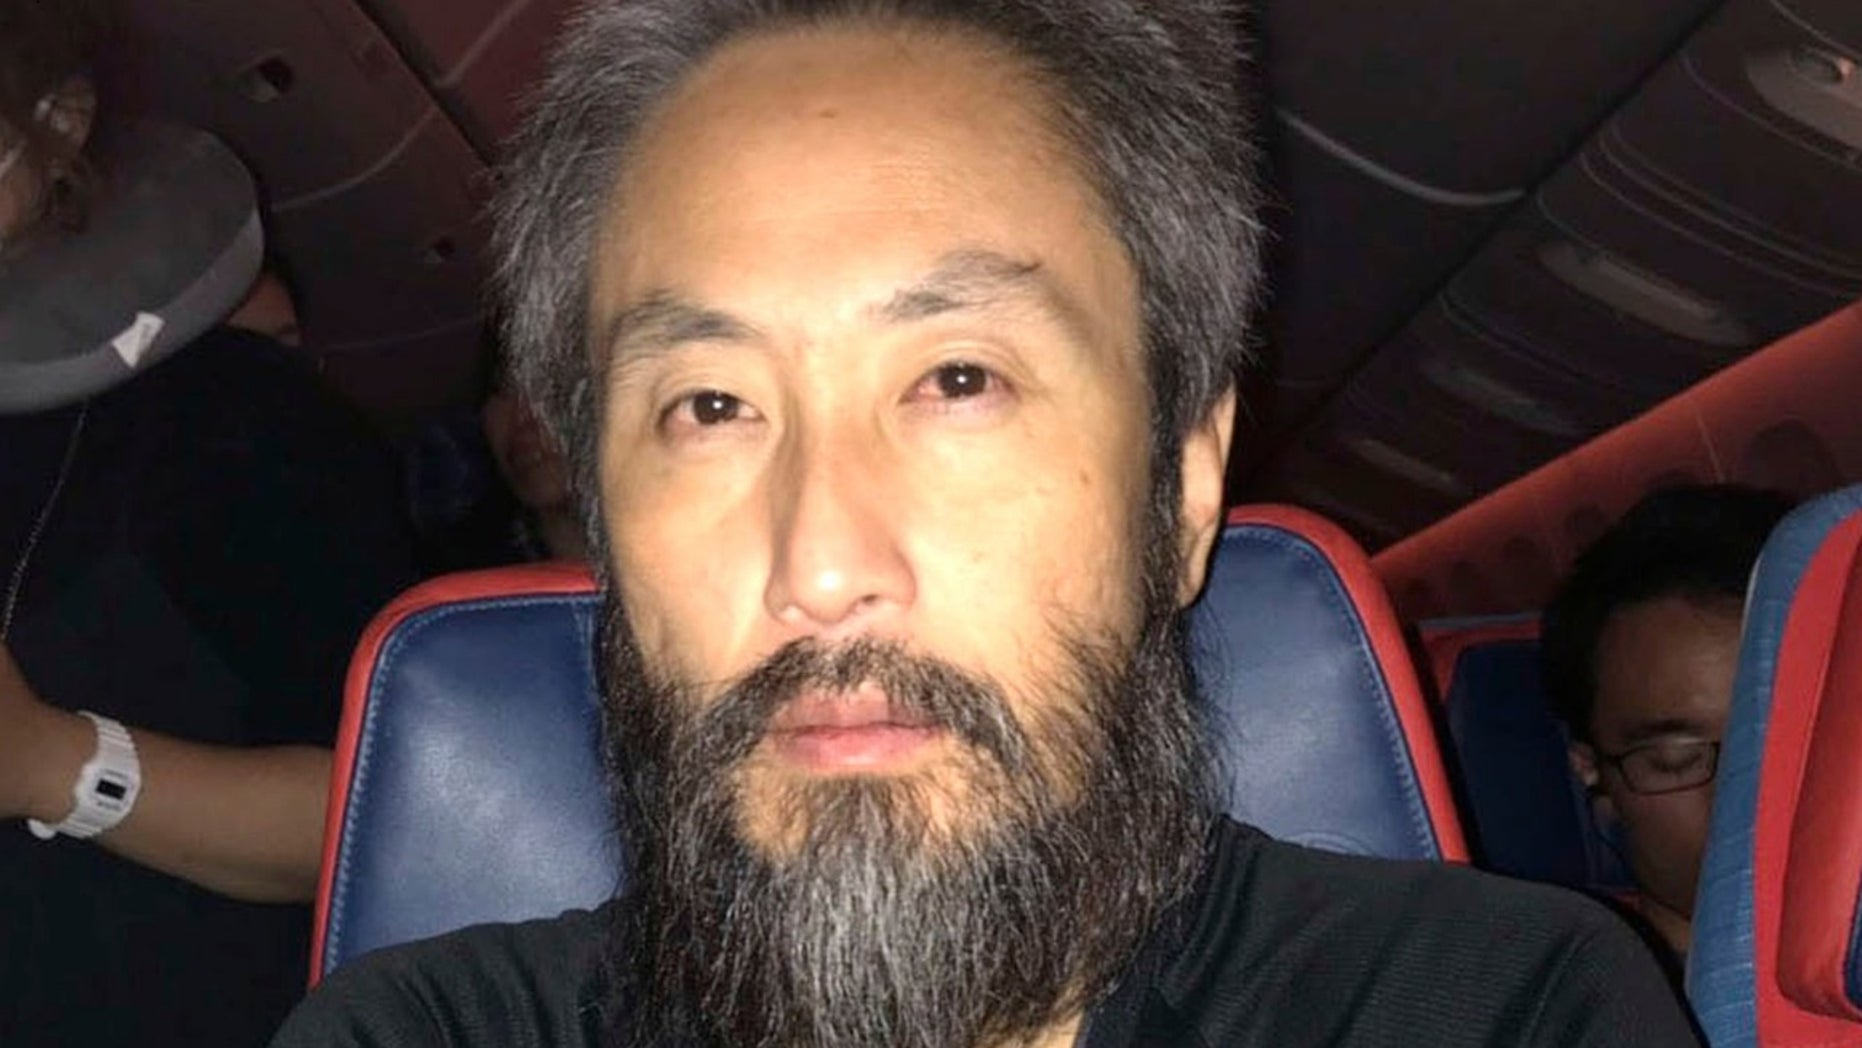 Jumpei Yasuda opened up about the terrible conditions he endured when he was kept captive in Syria for 40 months.